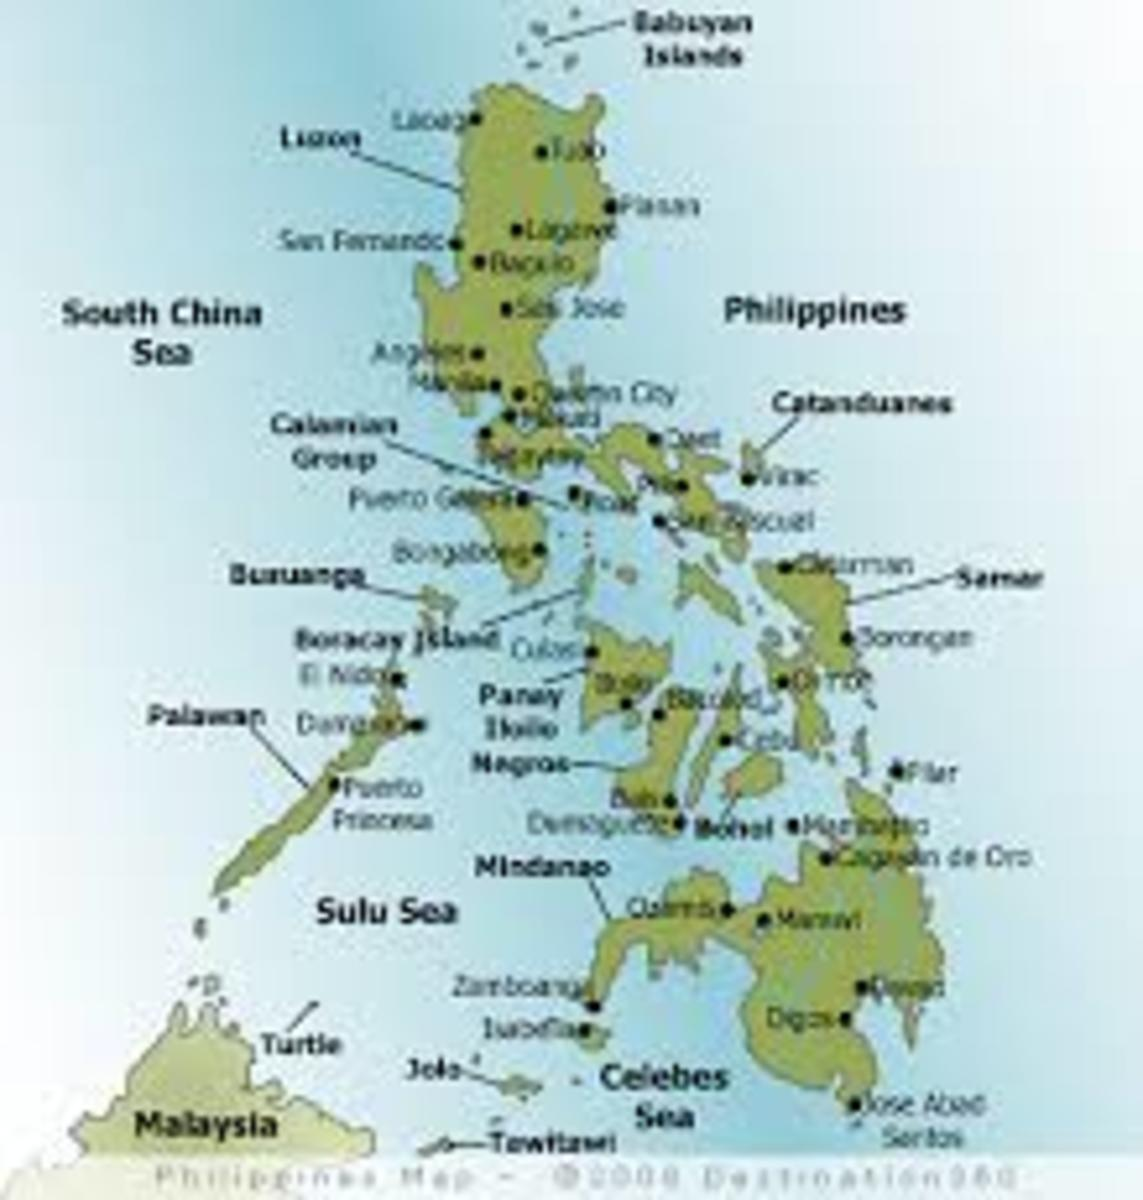 Advice About Traveling to the Philippines